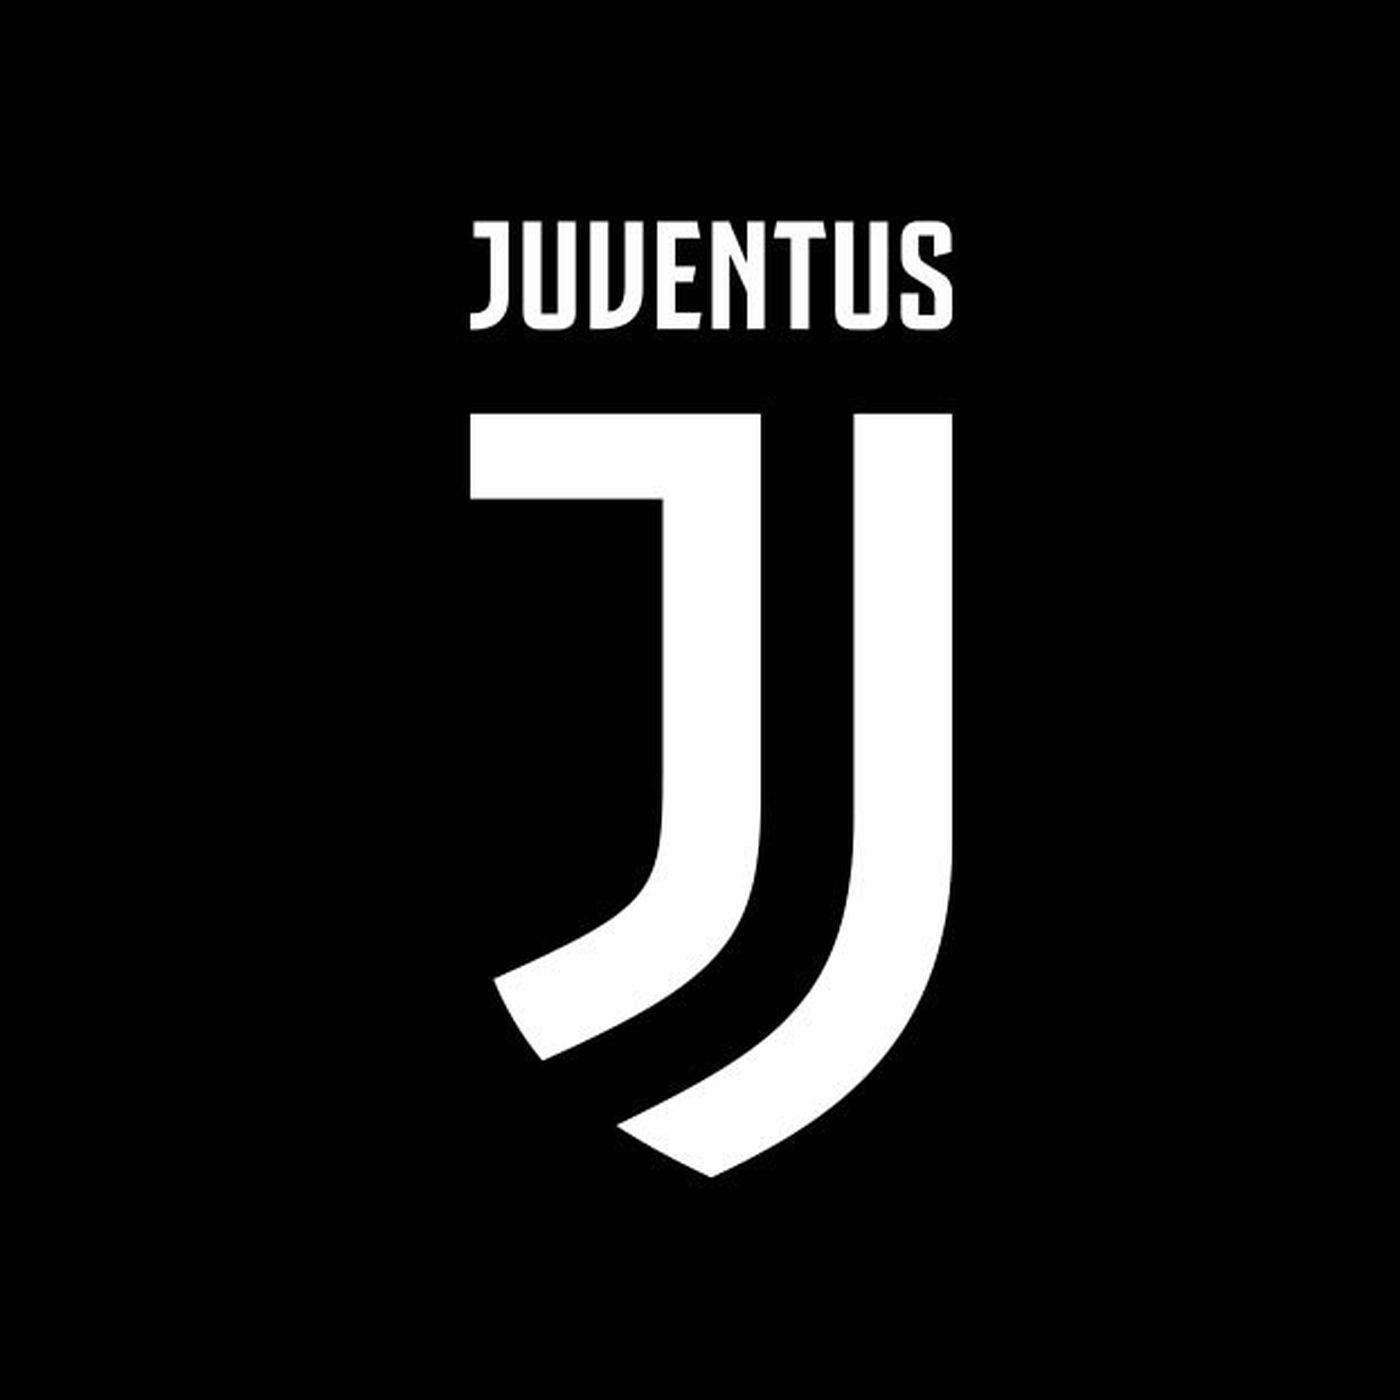 Juventus scrapped their classic crest and their new logo is juventus scrapped their classic crest and their new logo is literally just the letter j sbnation biocorpaavc Images